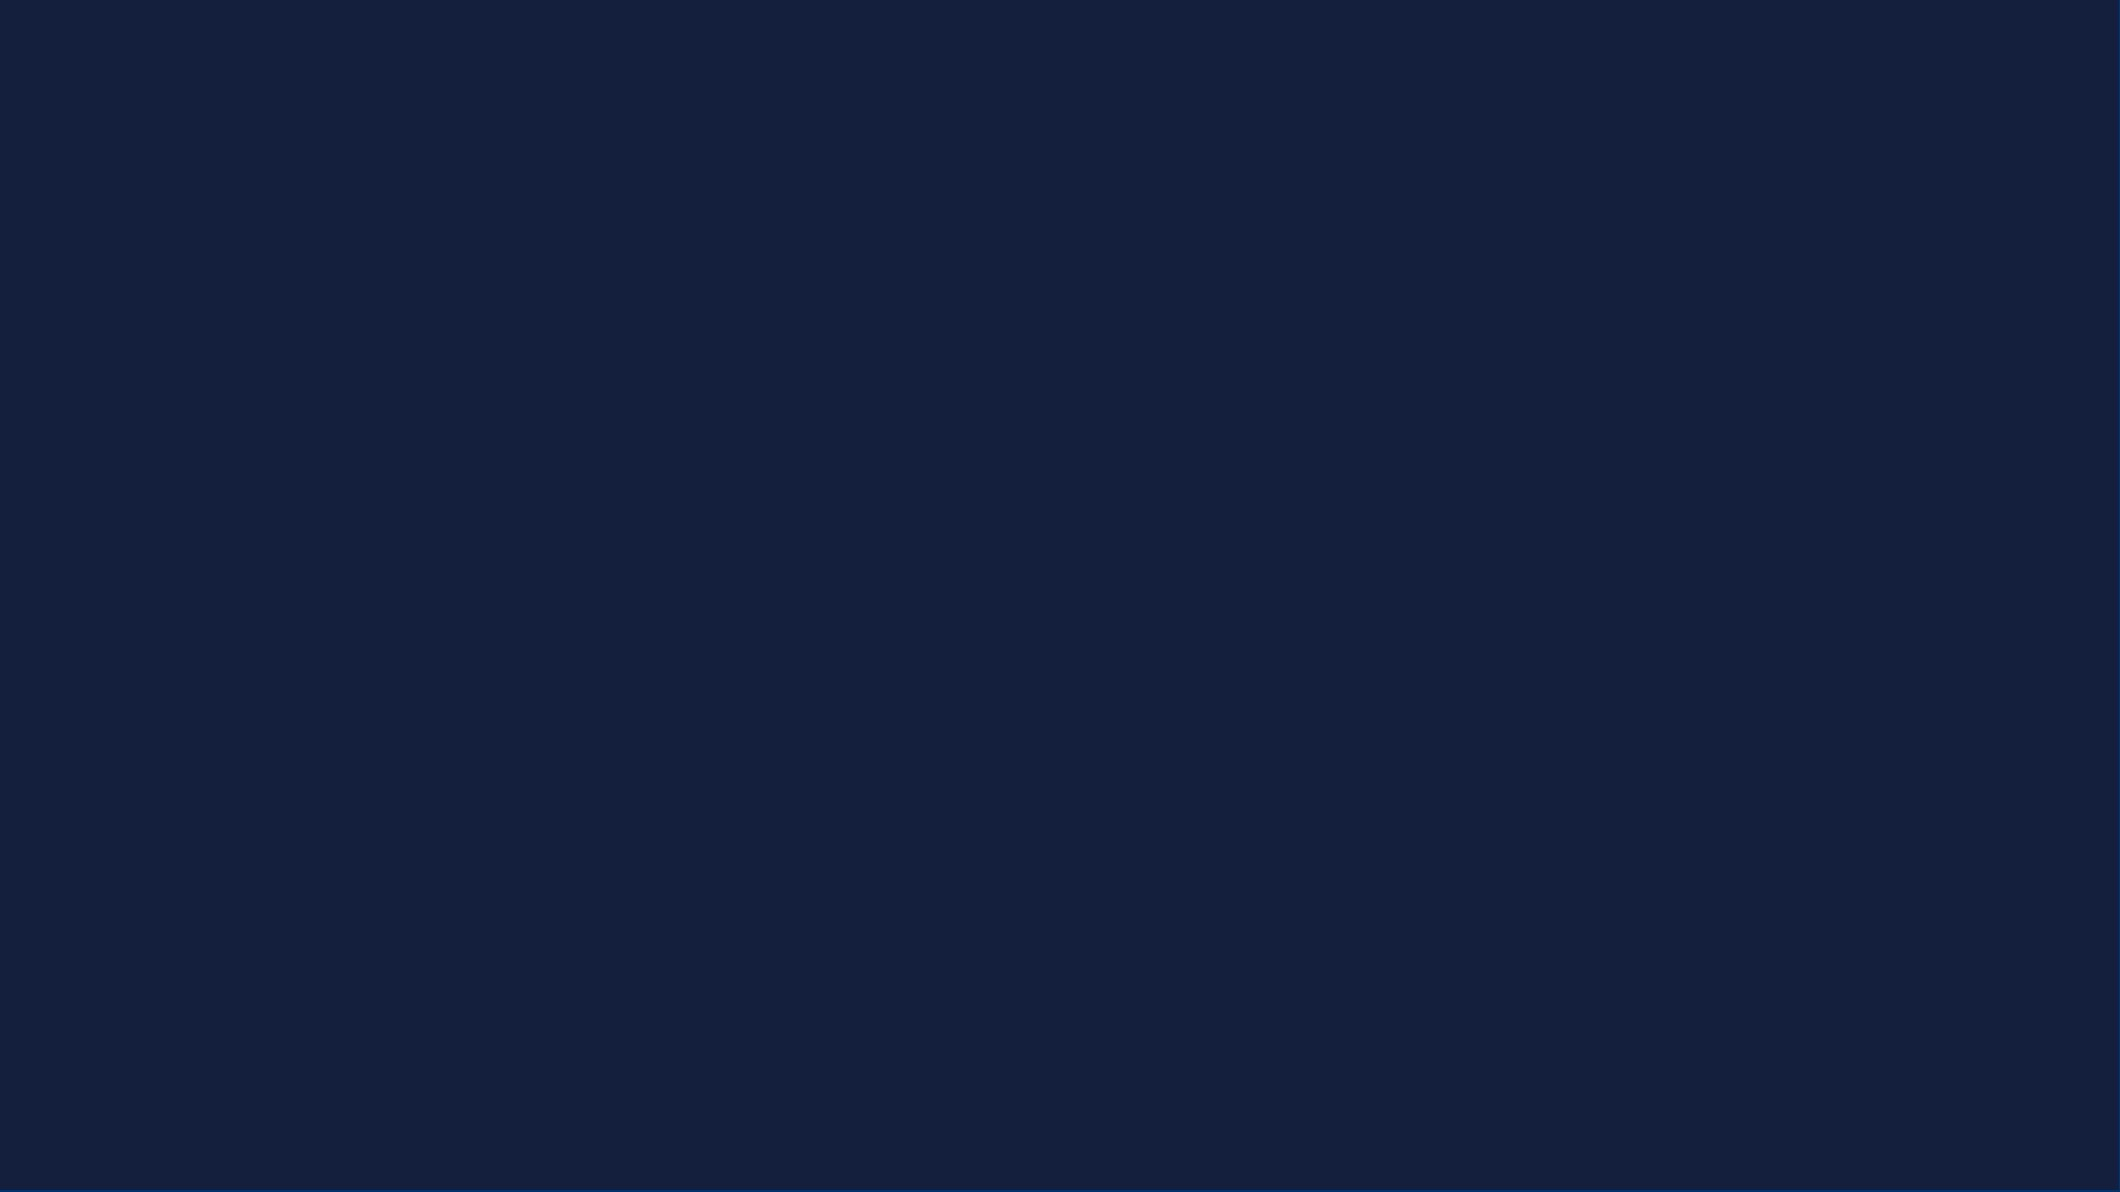 download navy blue backgrounds which is under the blue wallpapers .